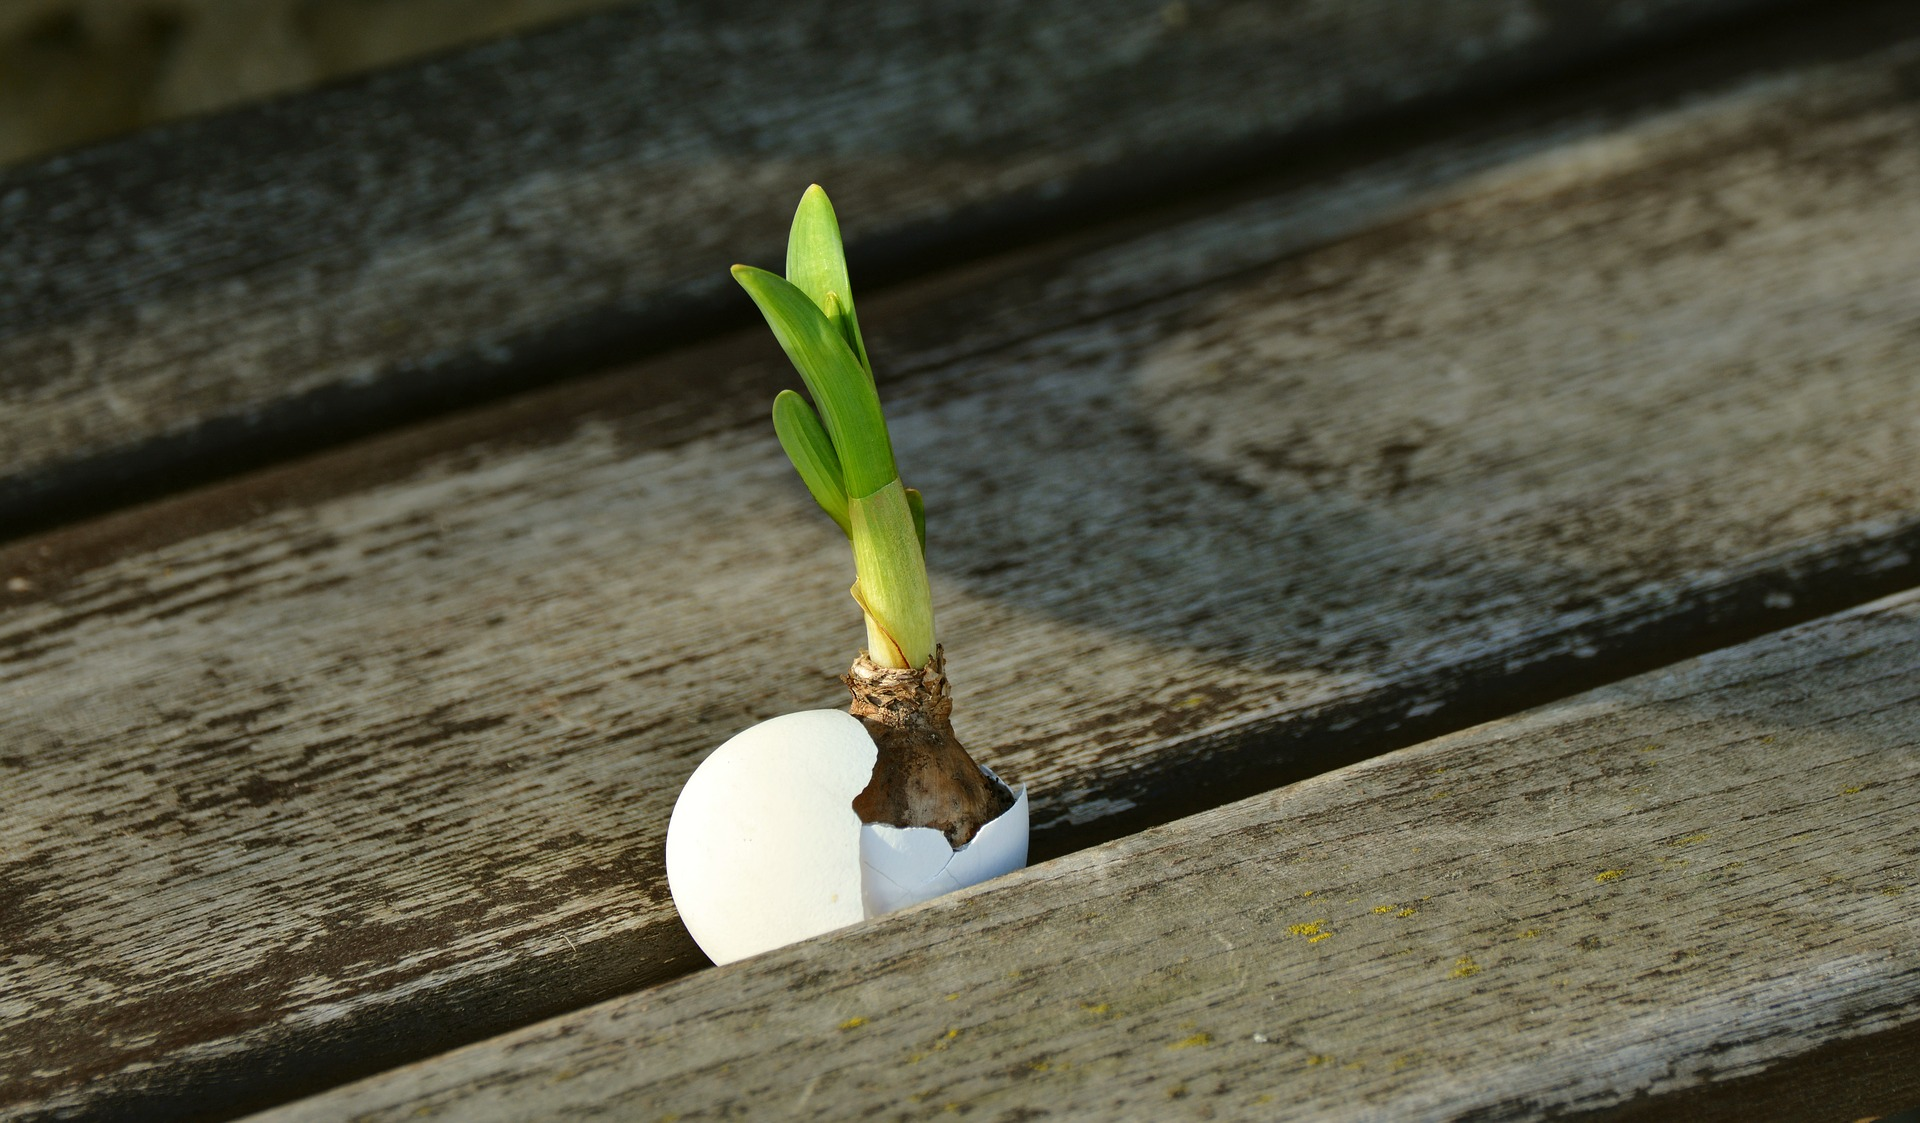 a small sprout in between wodden planks